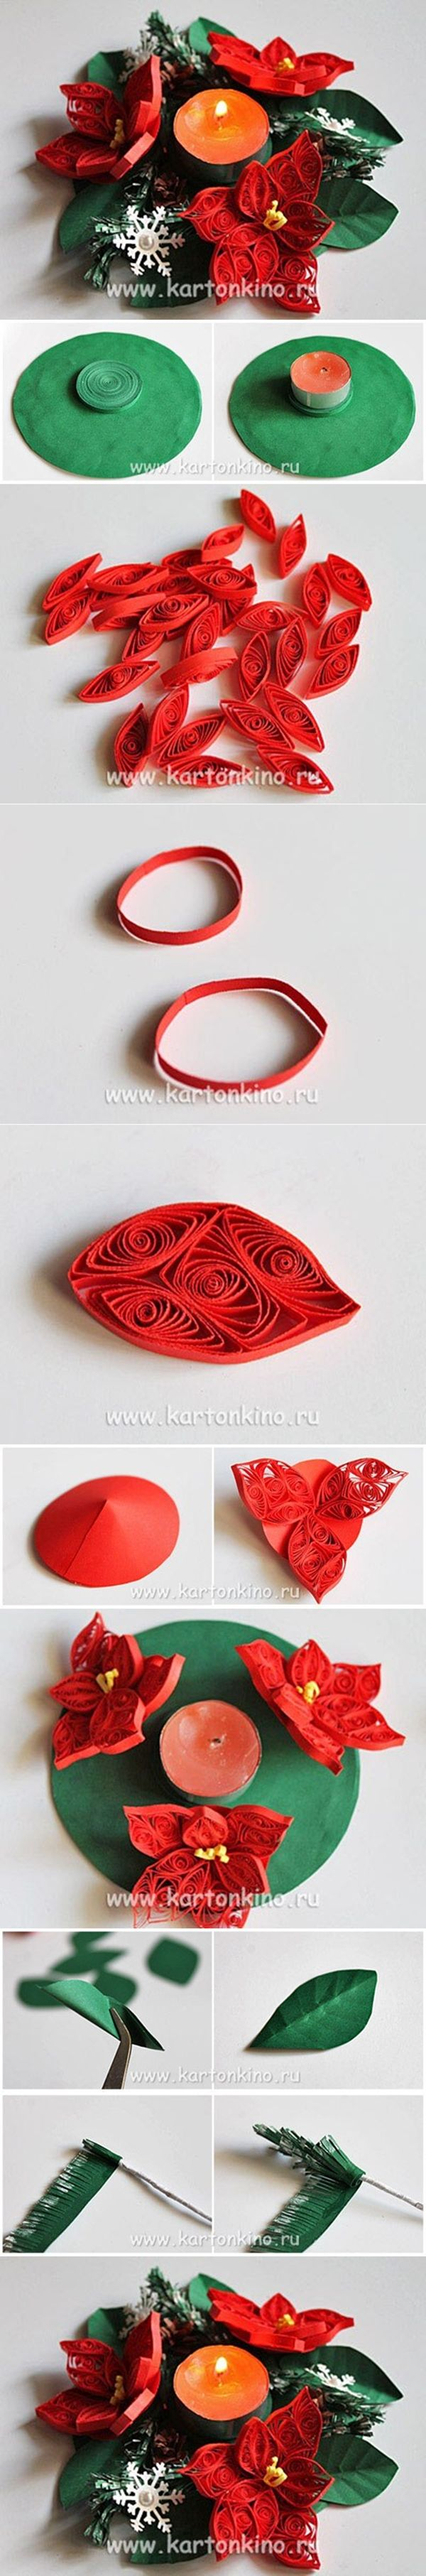 DIY 3D Quilling Flower Candle Holder - http://www.dollarstorecrafts.me/diy-3d-quilling-flower-candle-holder/